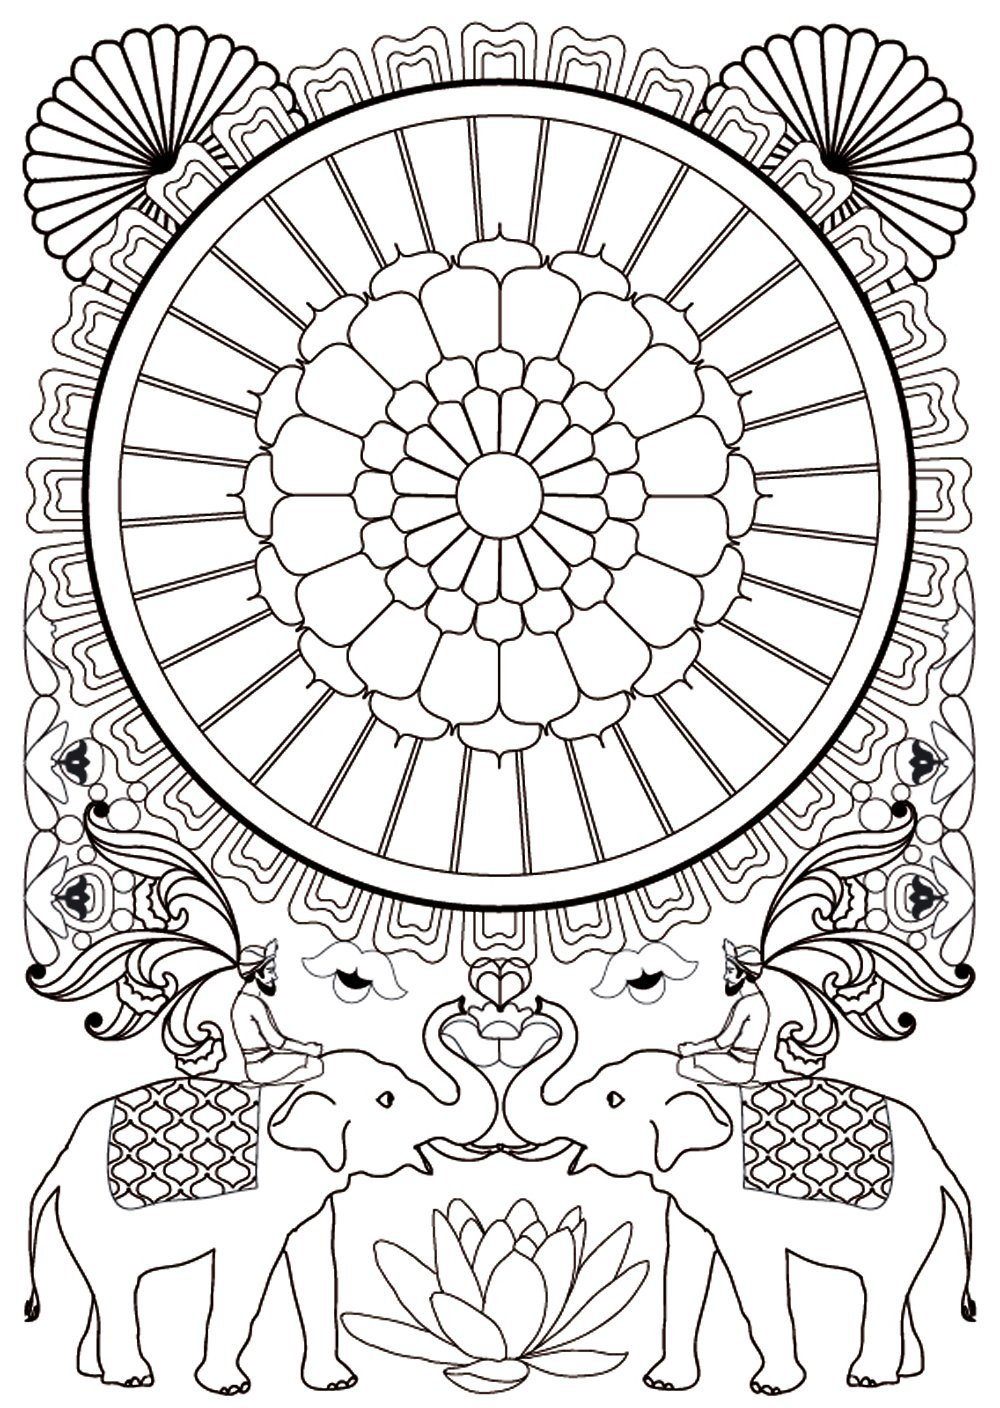 coloriage dessiner anti stress matriel - Coloriage Anti Stress Imprimer